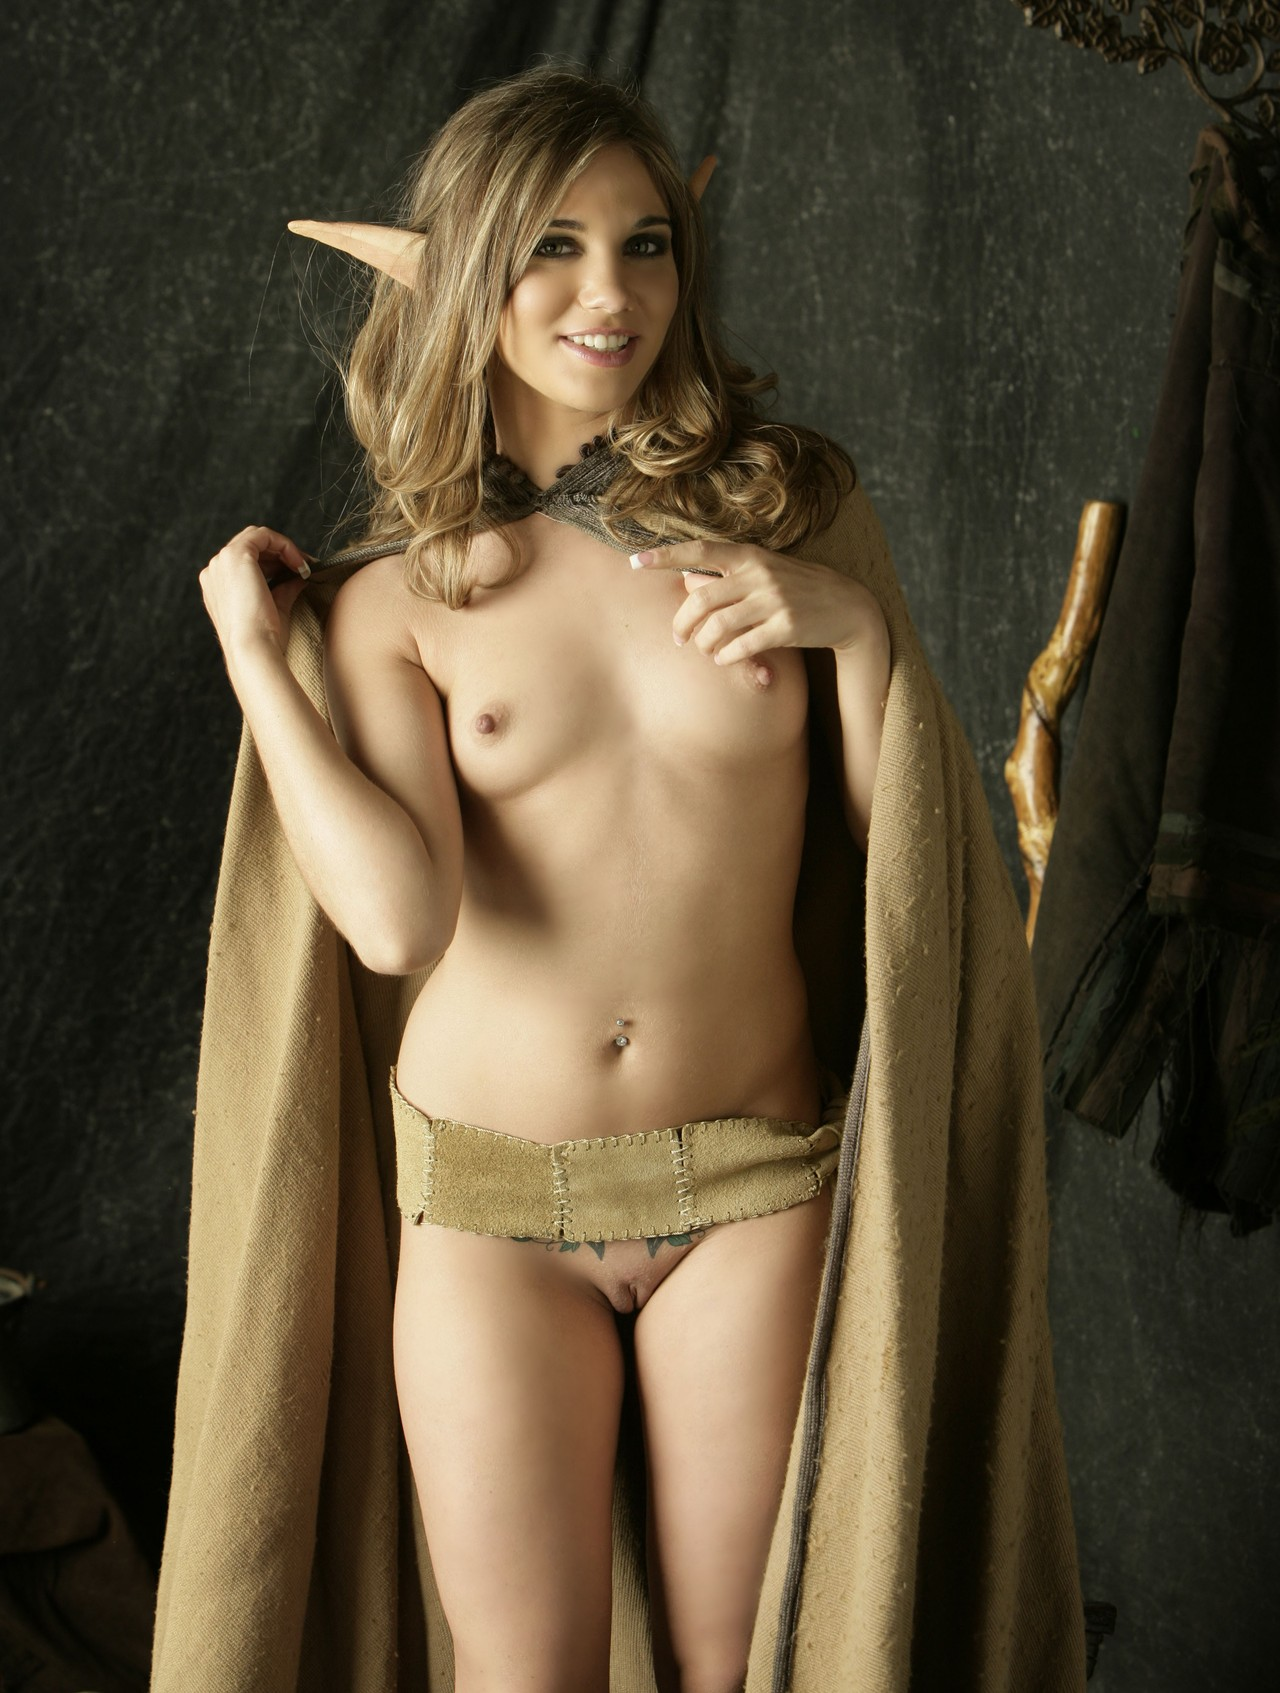 Pixies elves nudity xxx pic